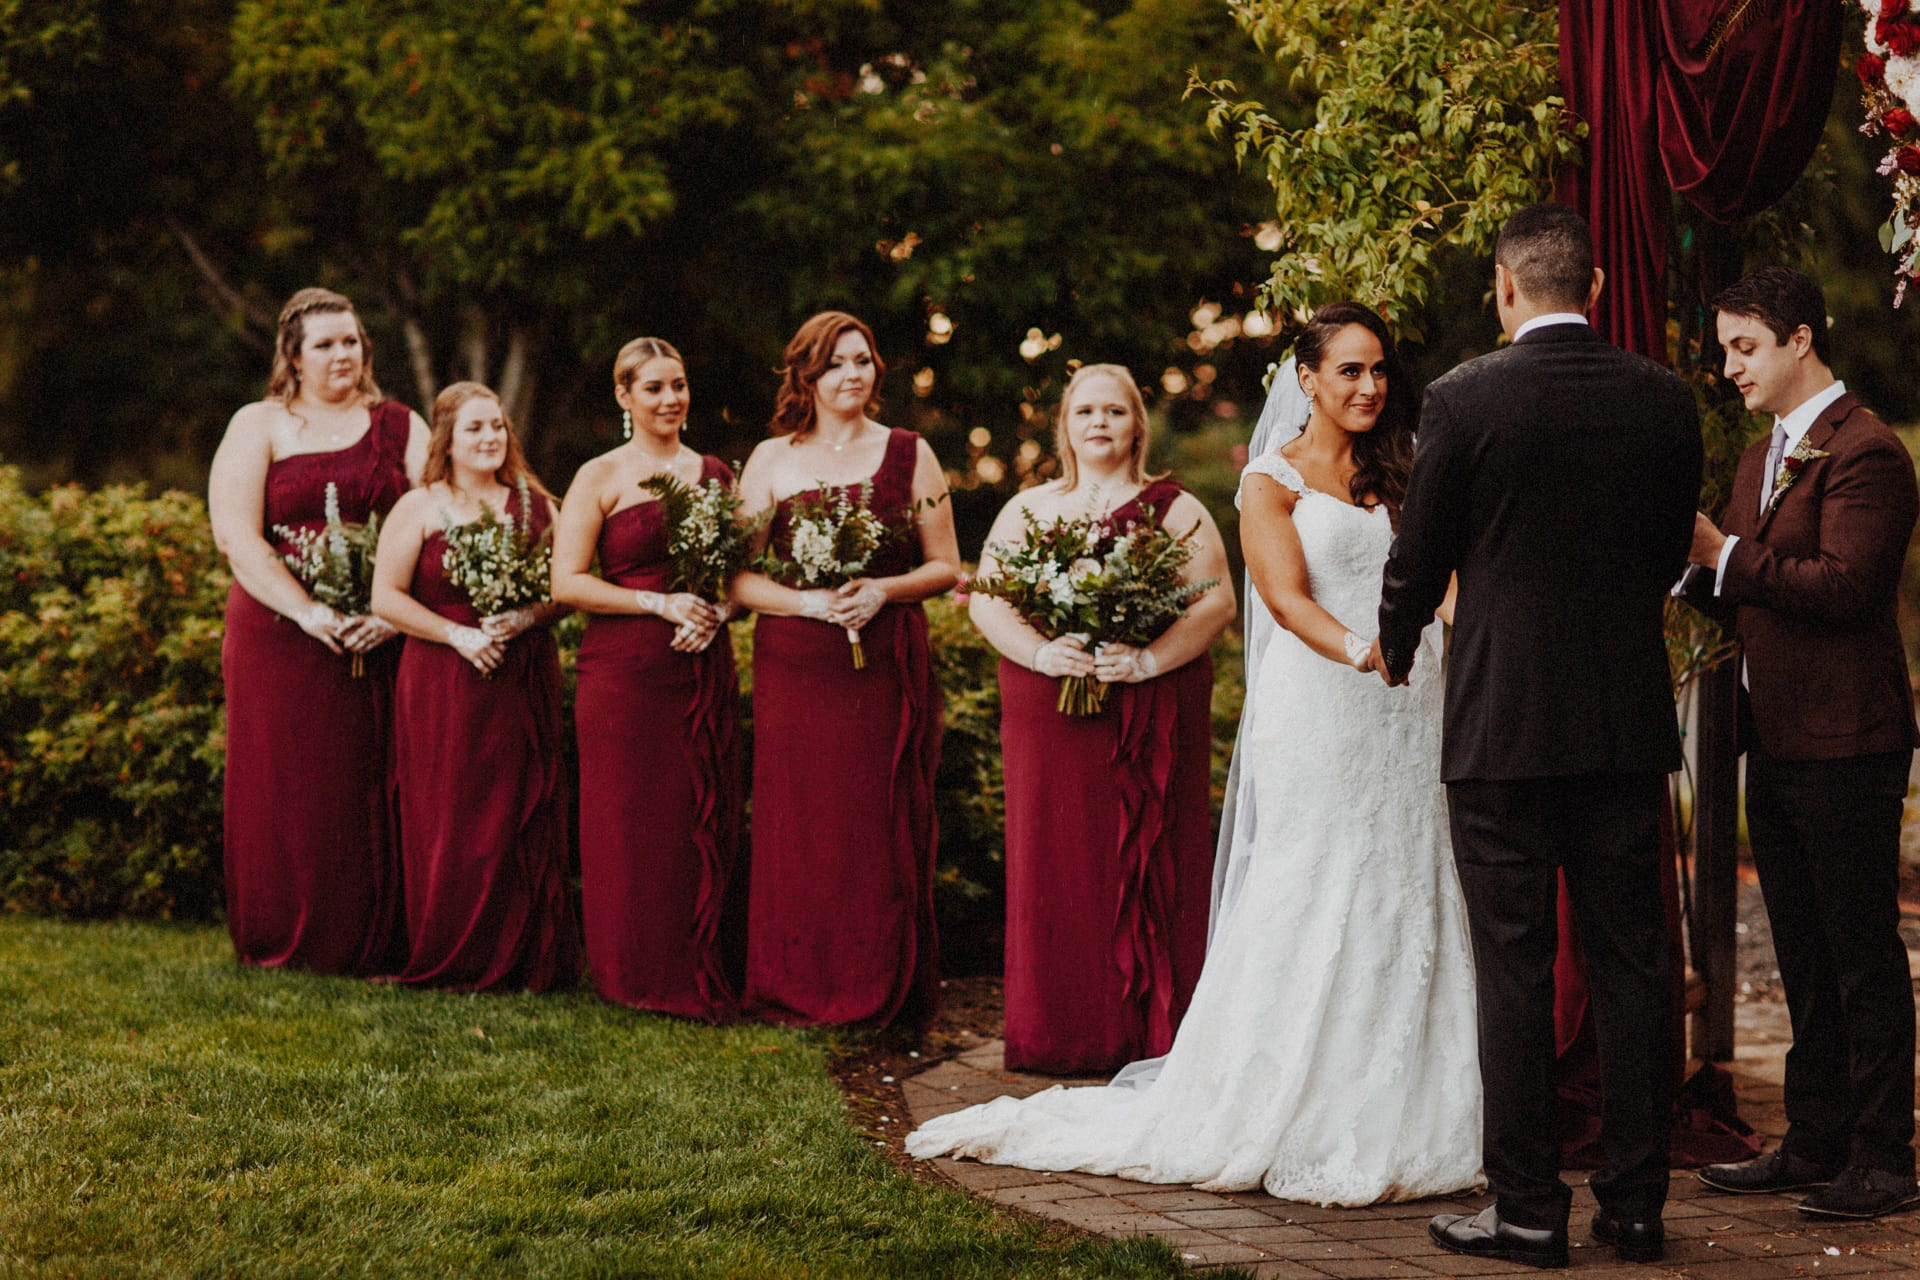 a bride and her bridesmaids dressing in wine colored dresses at the Oregon Garden Resort